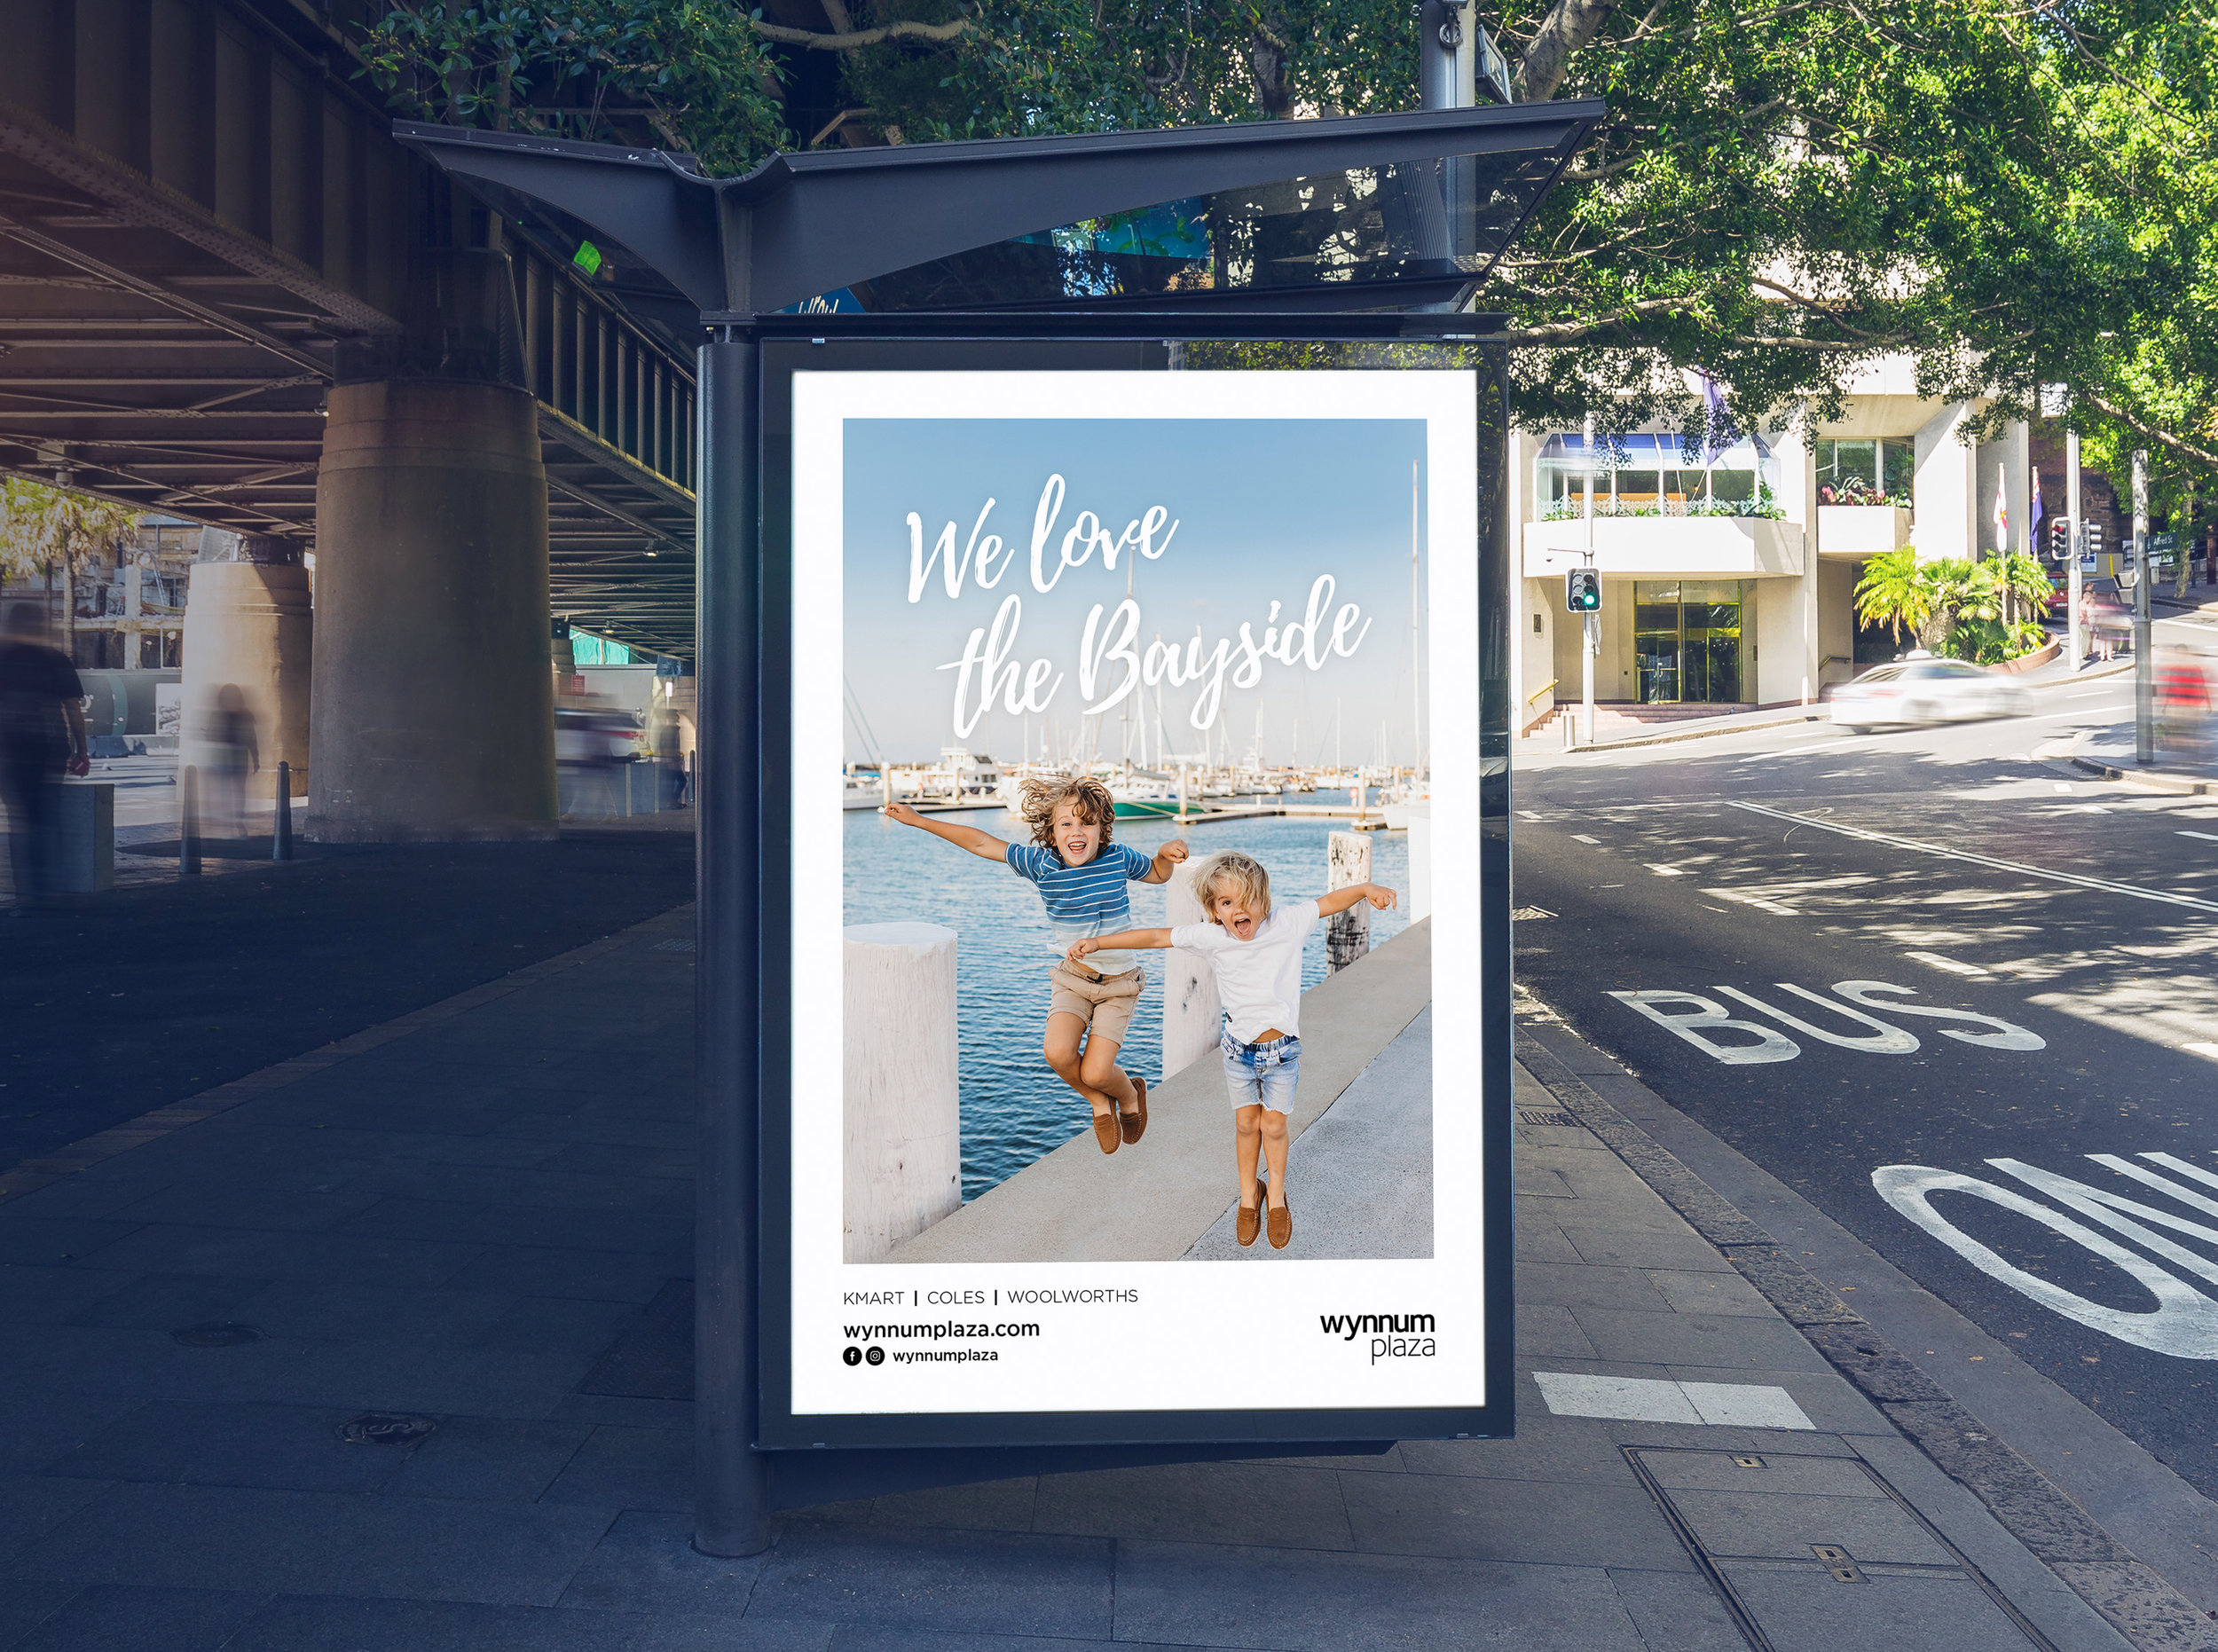 Outdoor-Bus-Stop-Advertisement-Vertical-Billboard-Poster-Mockup-PSD-2018-INSTAGRAM V2.jpg